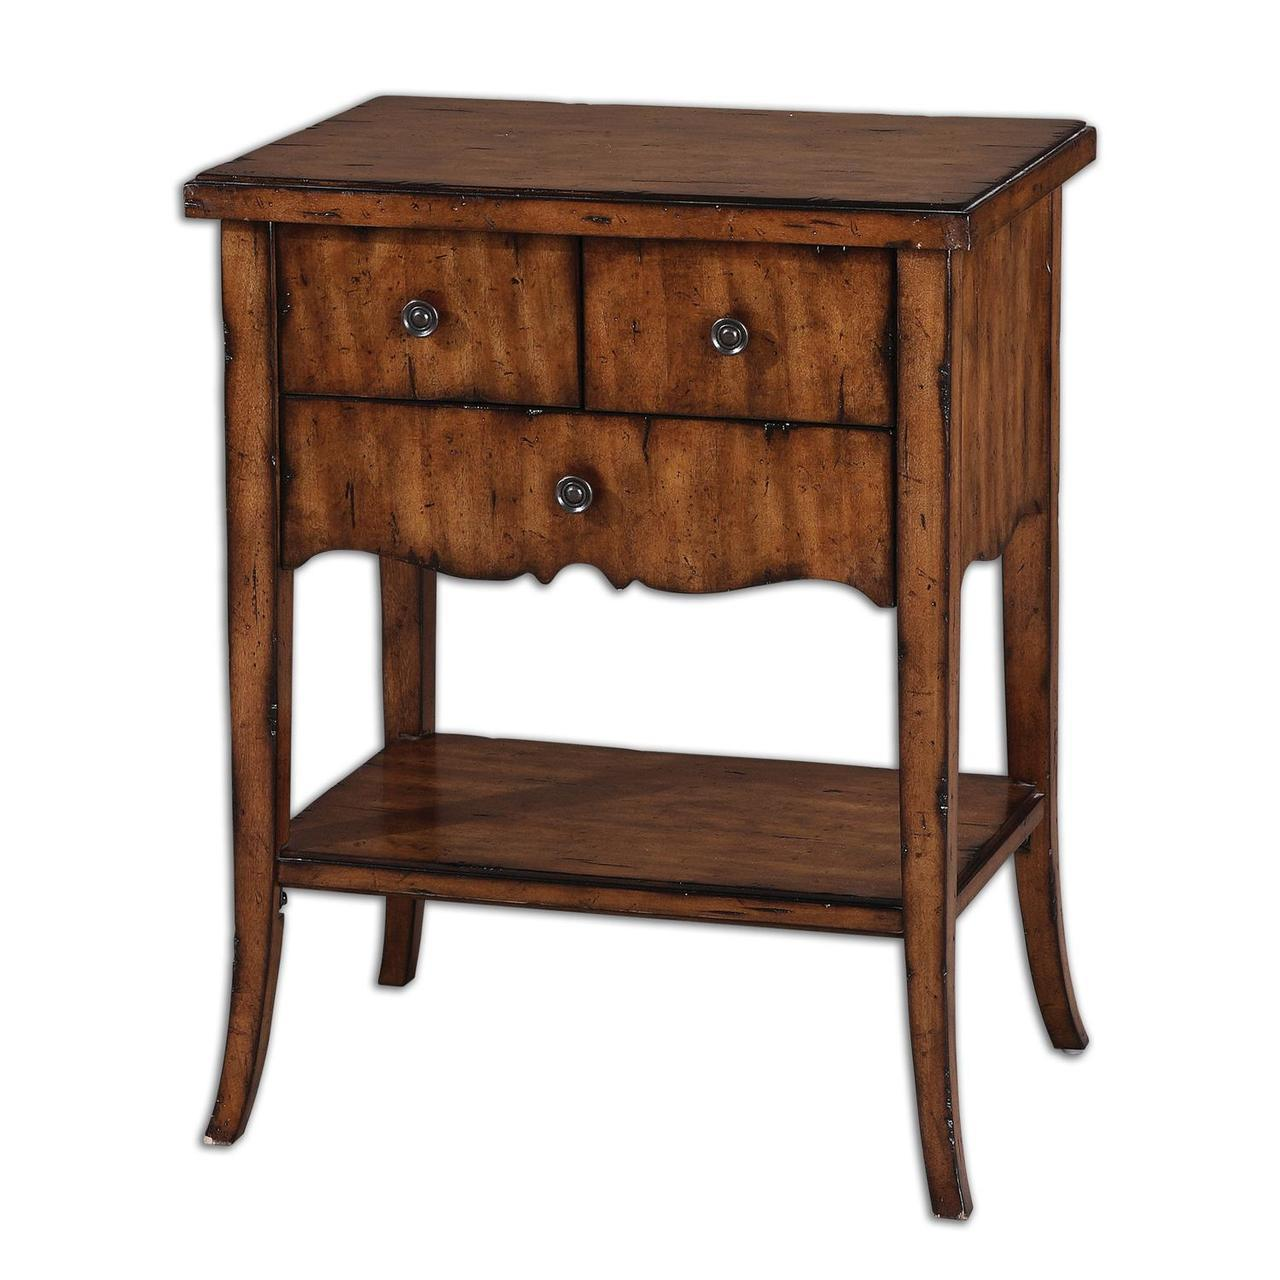 eldridge distressed warm primavera veneer wood drawer accent three table side beach themed lamp shades trim between carpet and tile round nightstand tablecloth metal coffee screen